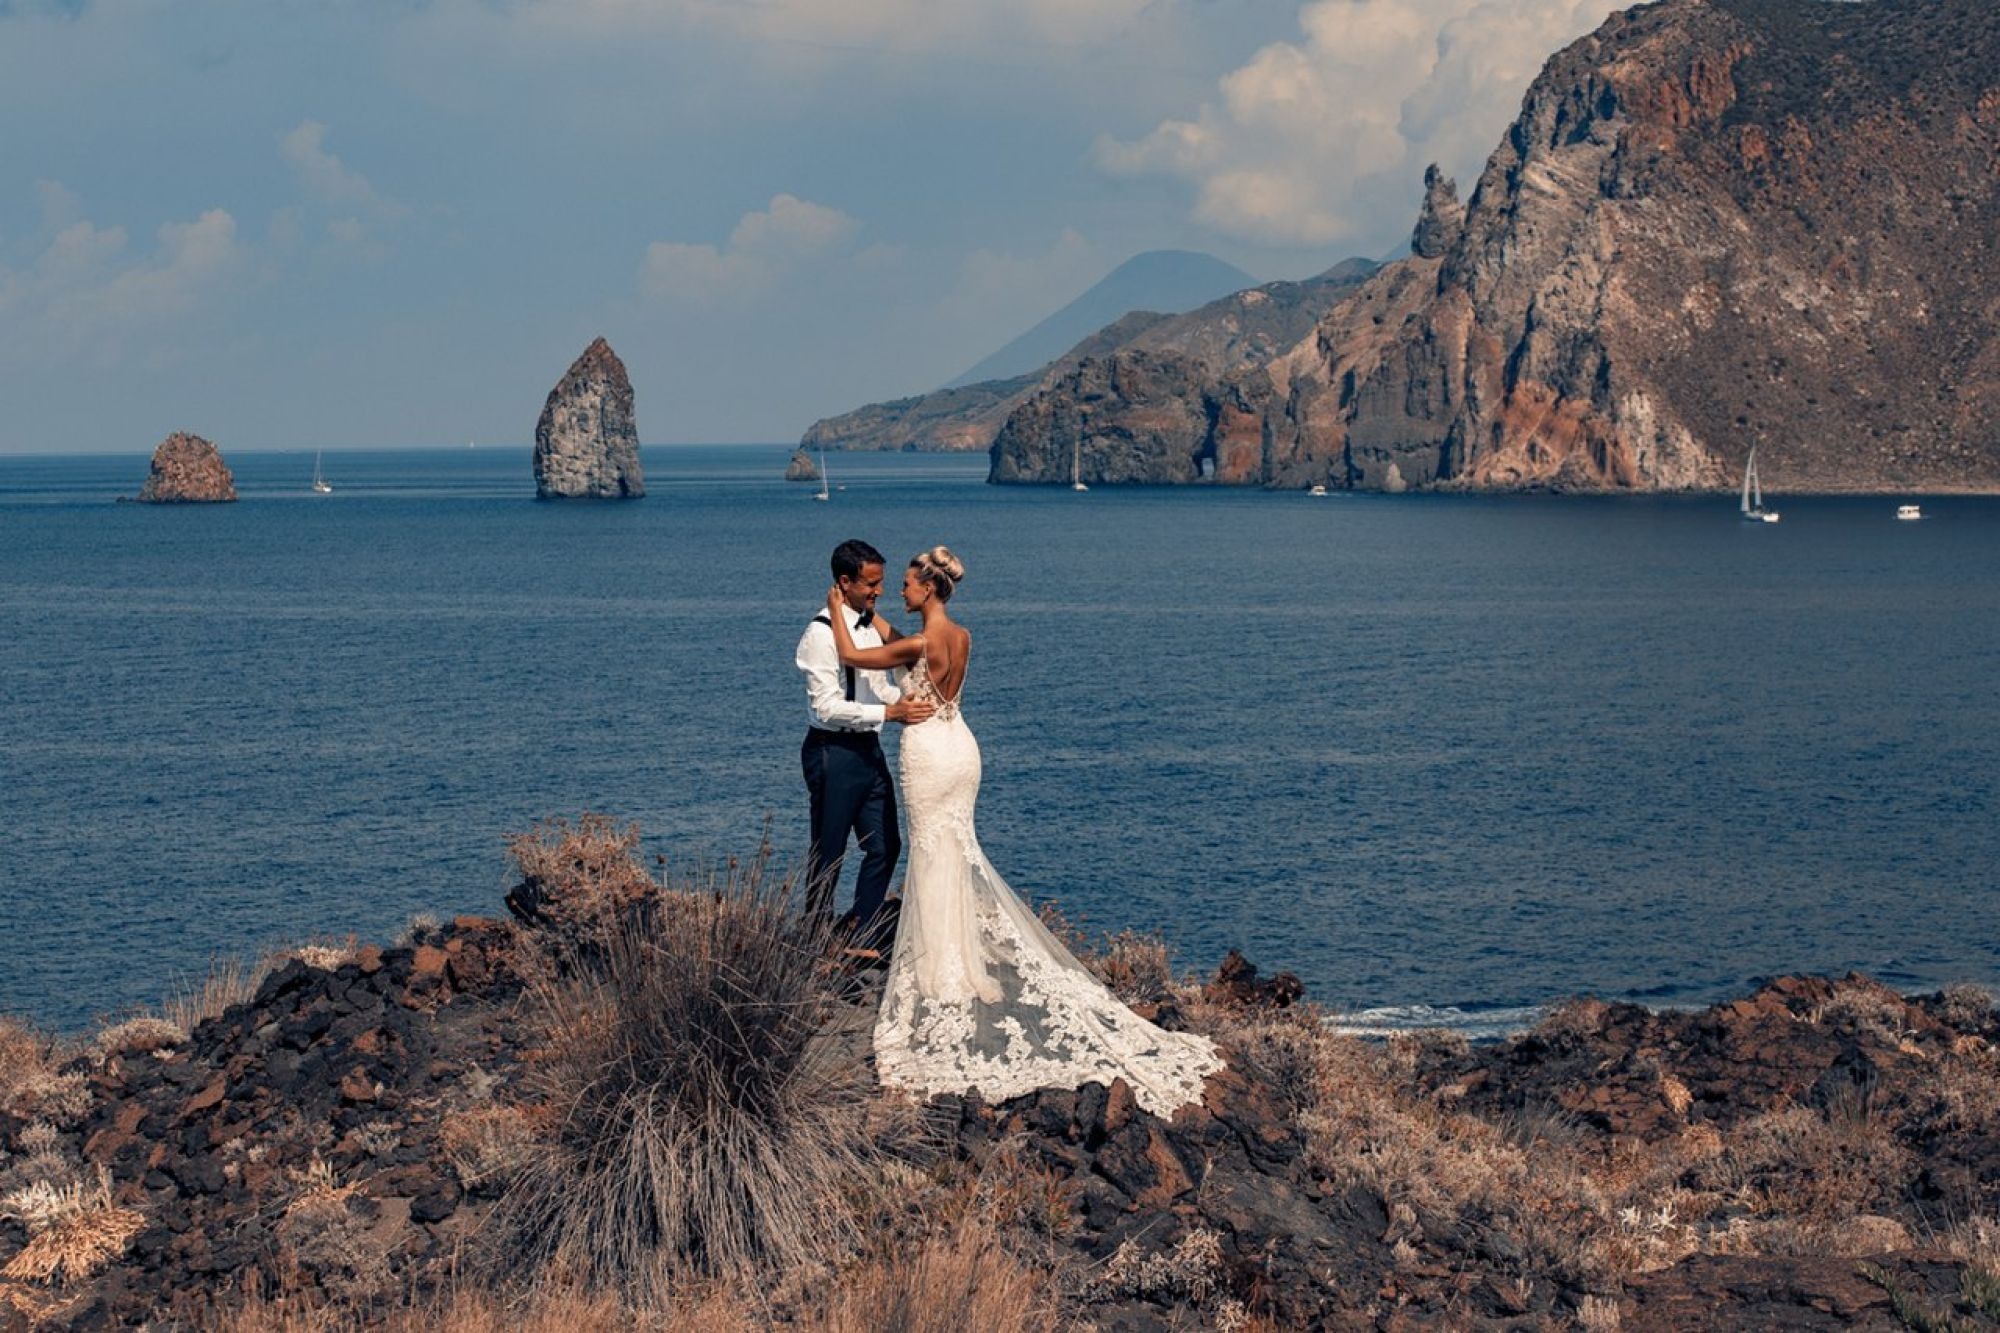 Click to enlarge image matrimonio-nikki-giuseppe-chiello-masterphotographer-sicily-wedding 13.jpg